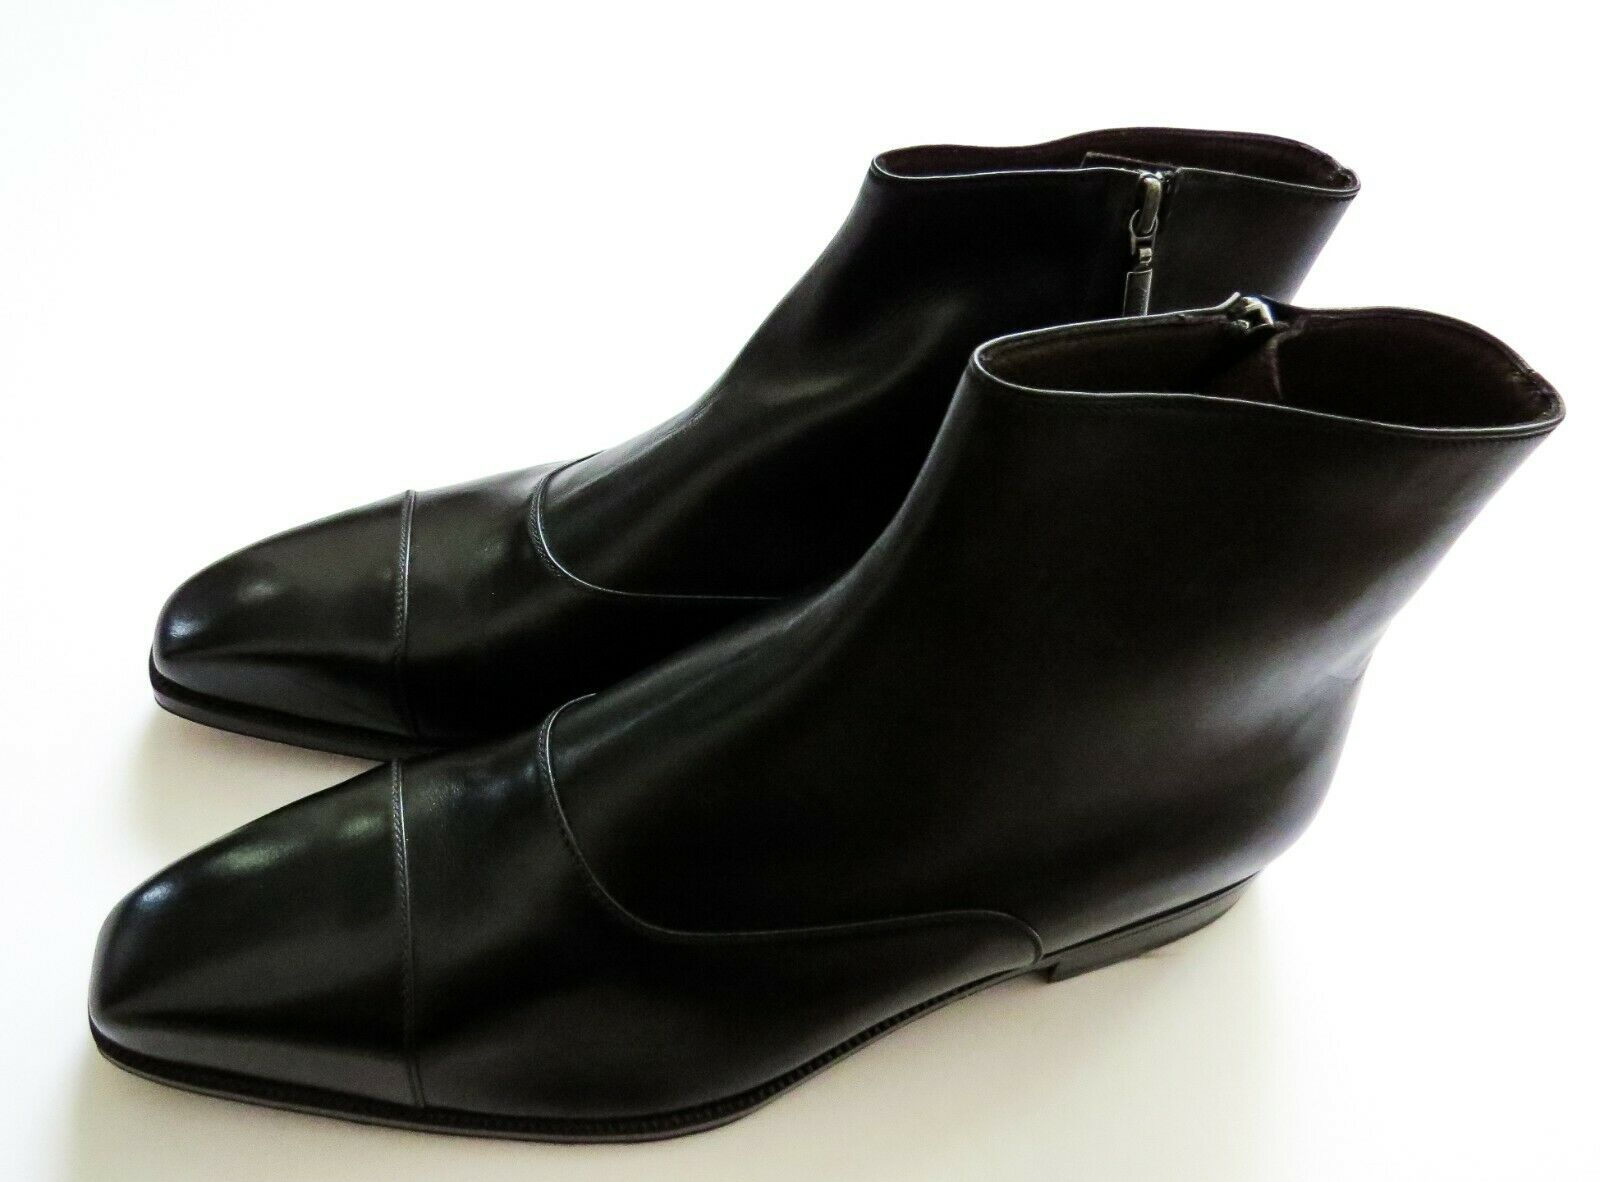 BRIONI Black Leather Zip Up Ankle Boots Size 10 US 43 Euro 9 UK